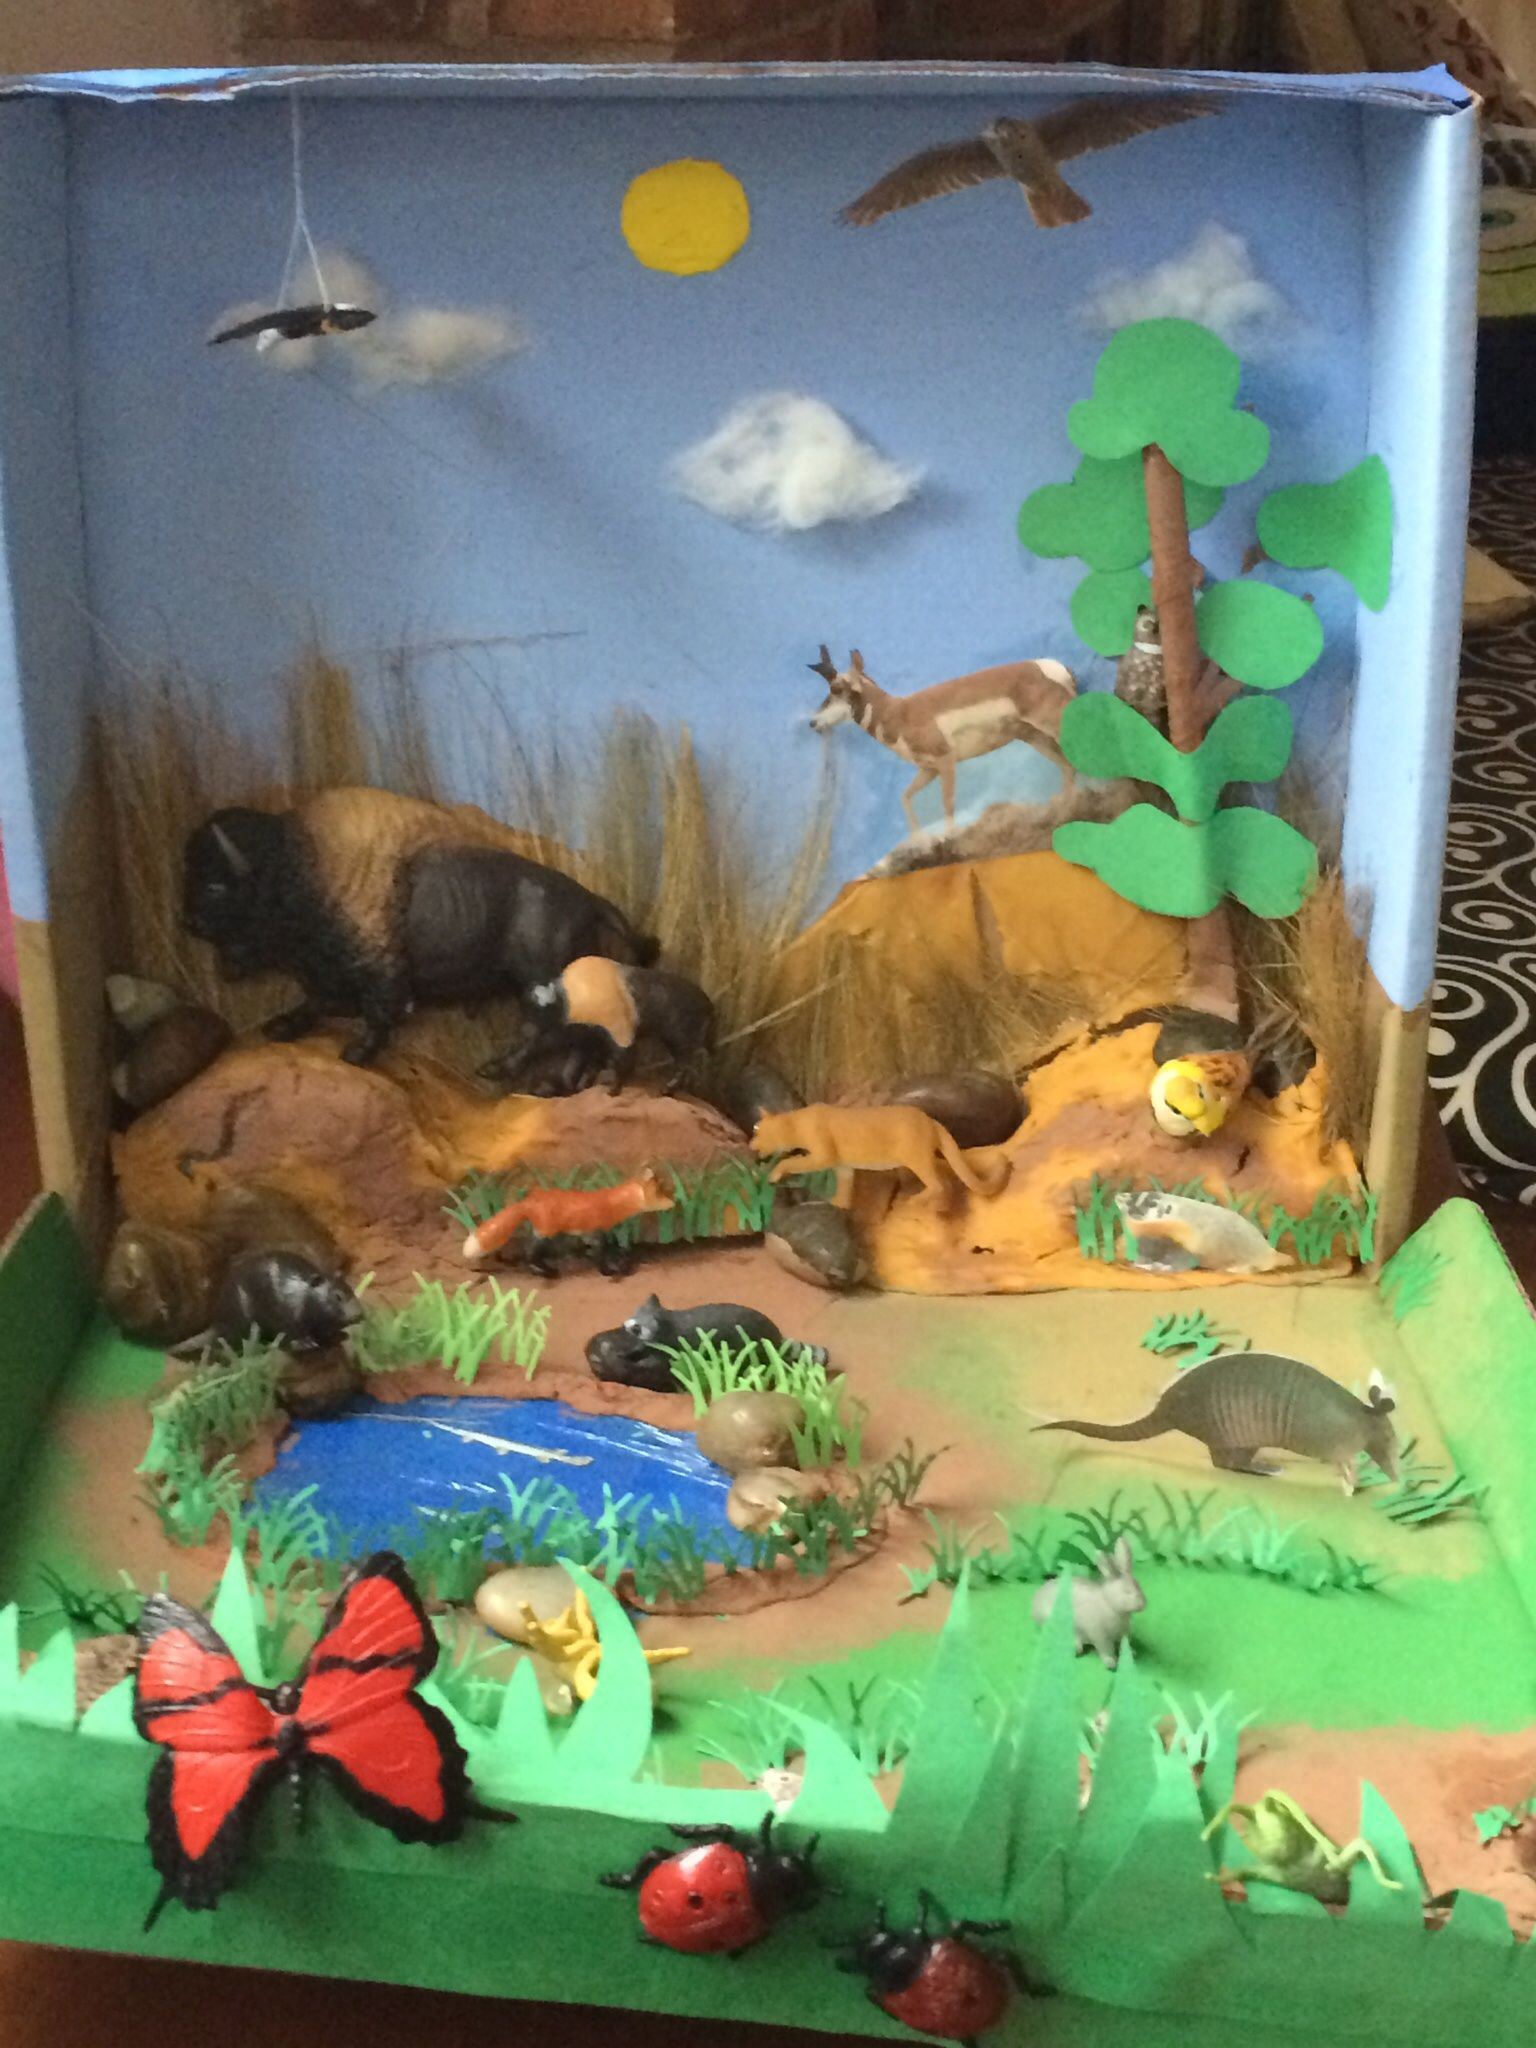 Biome Diorama Grasslands Habitats projects, Ecosystems